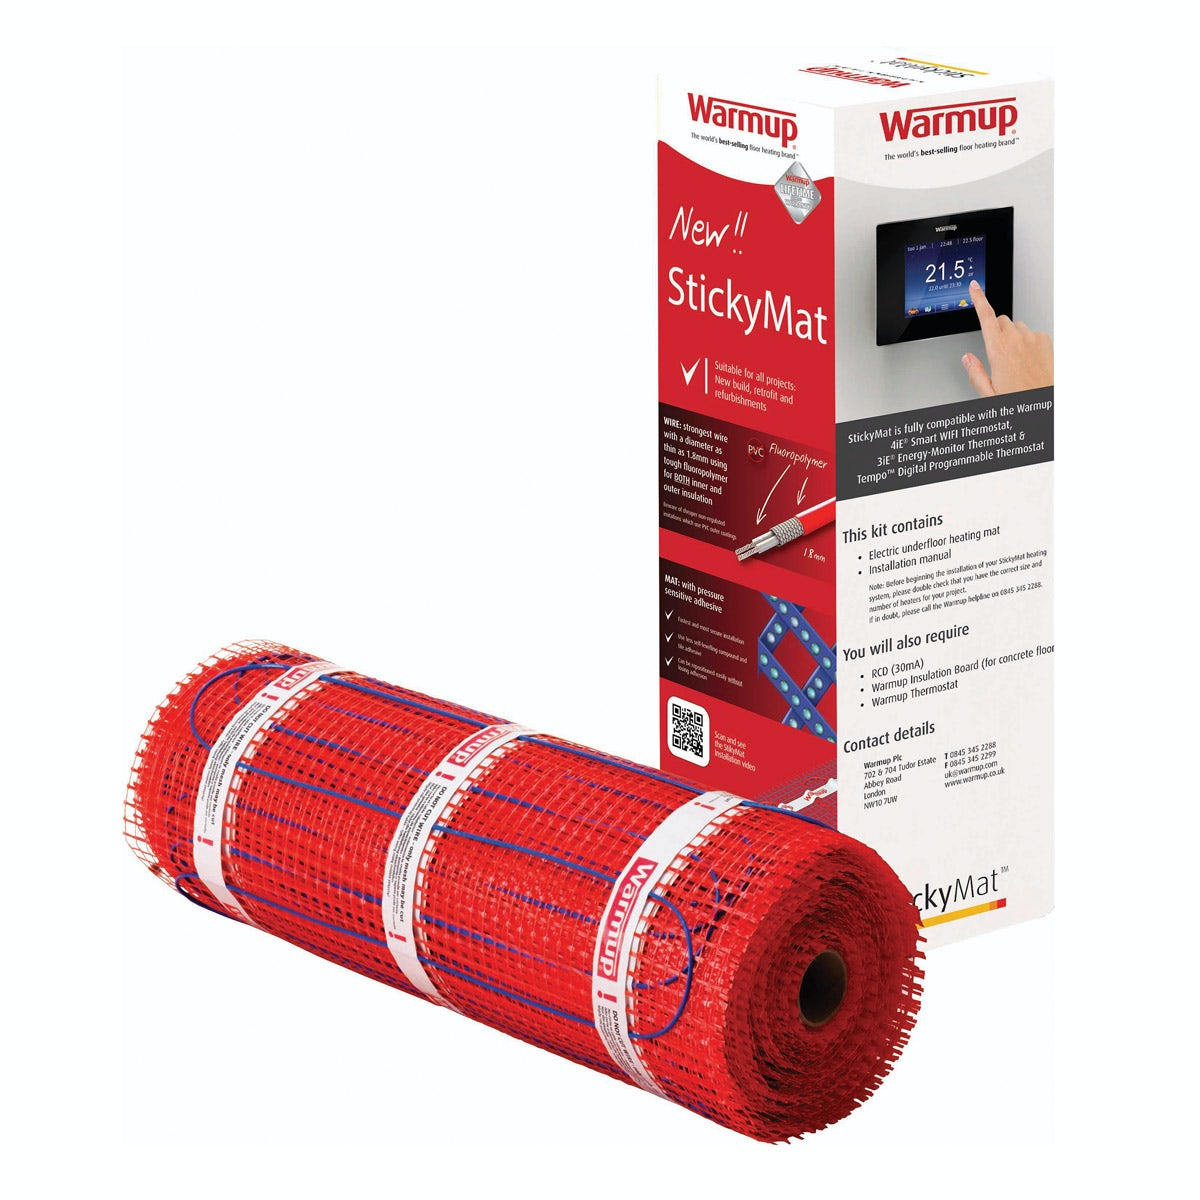 Warmup StickyMat underfloor heating mat 150w